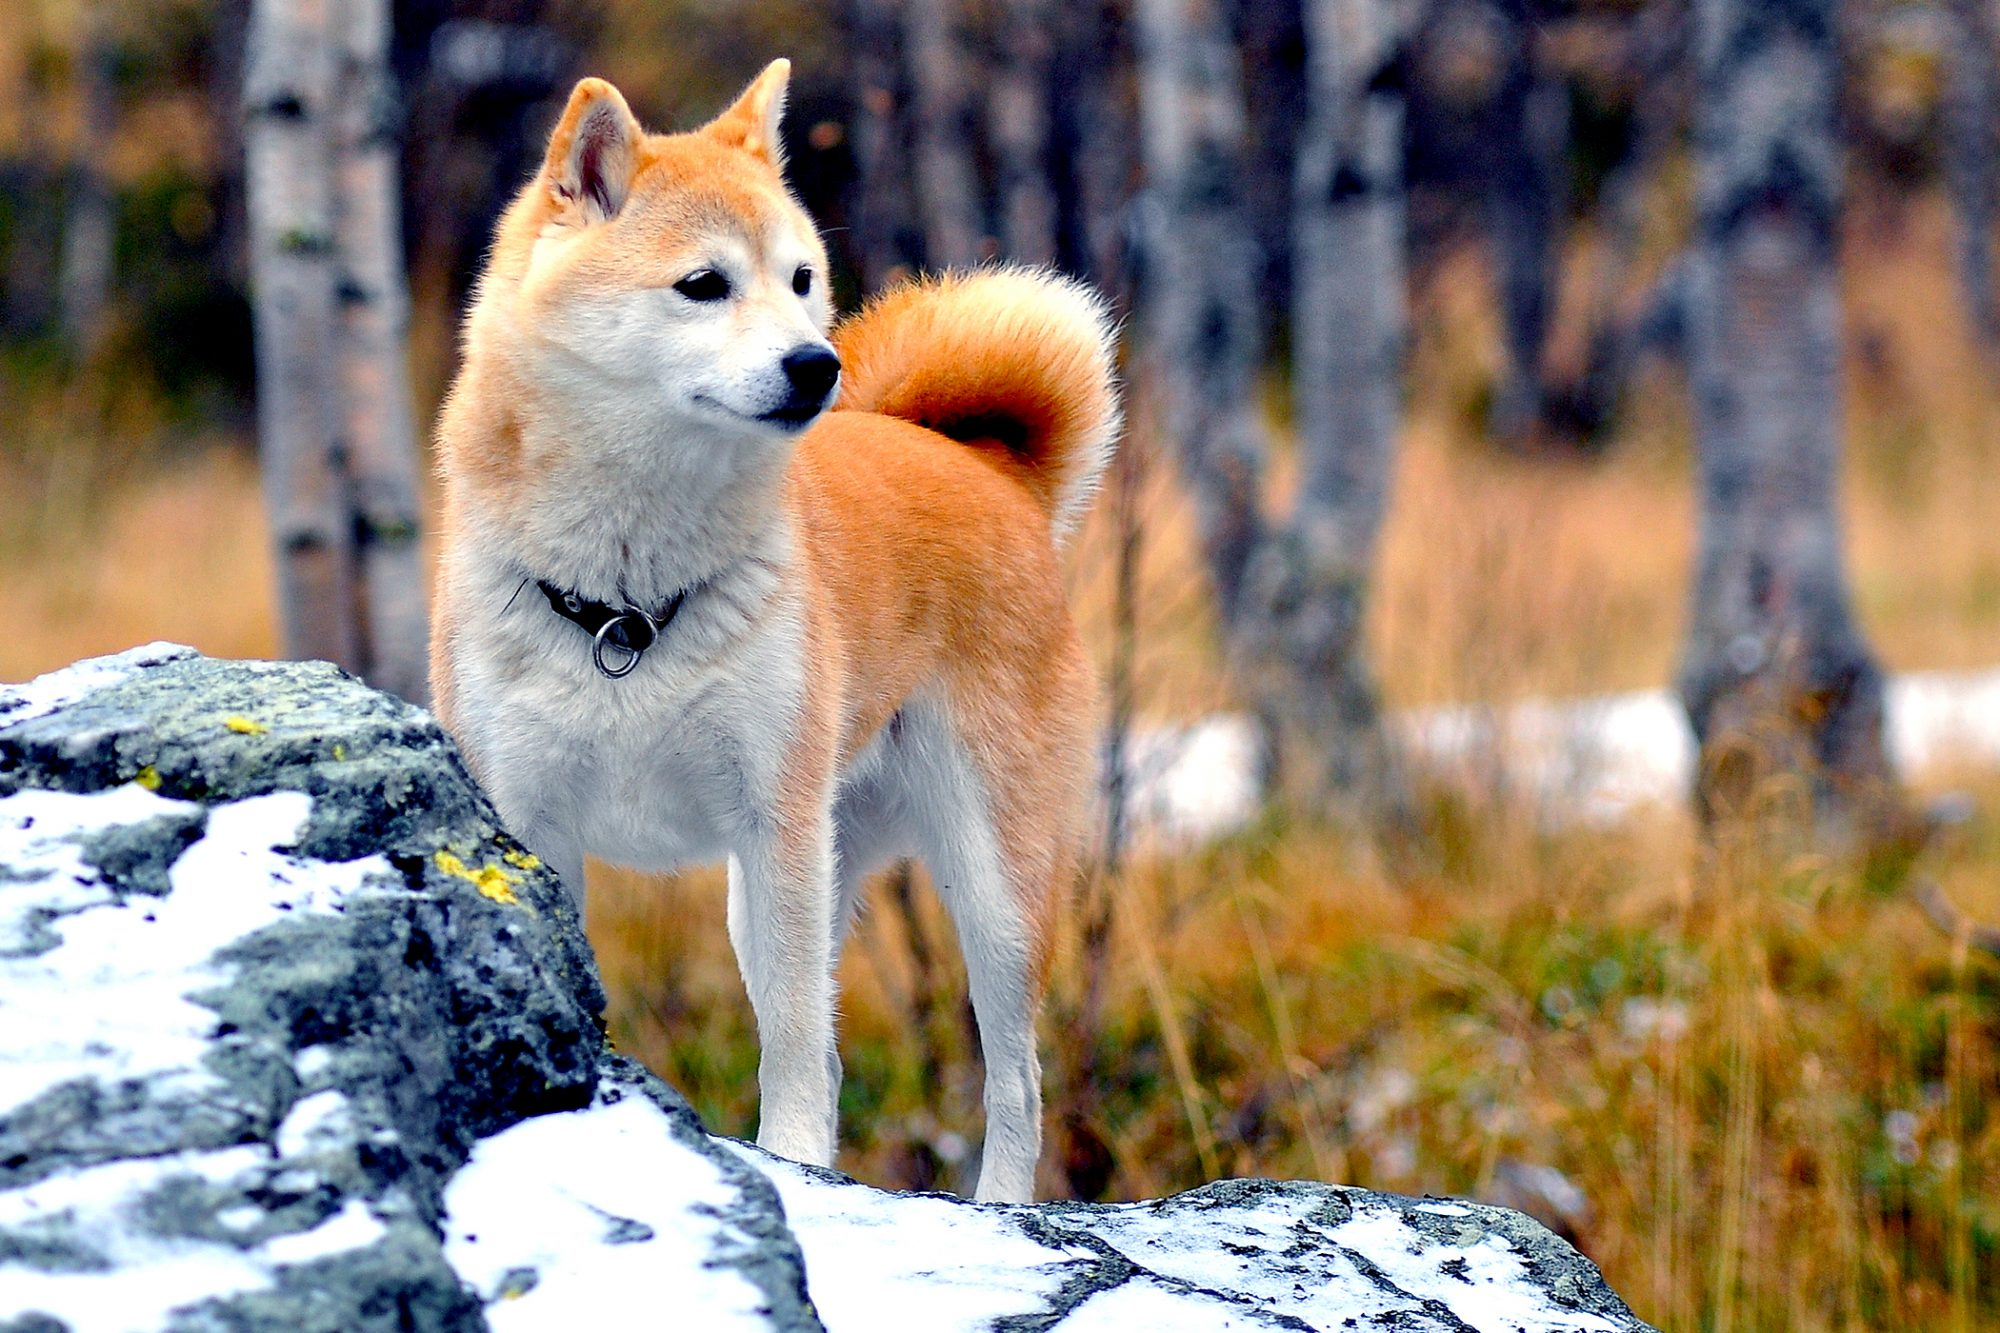 Red and white shiba inu stands on snowy rock